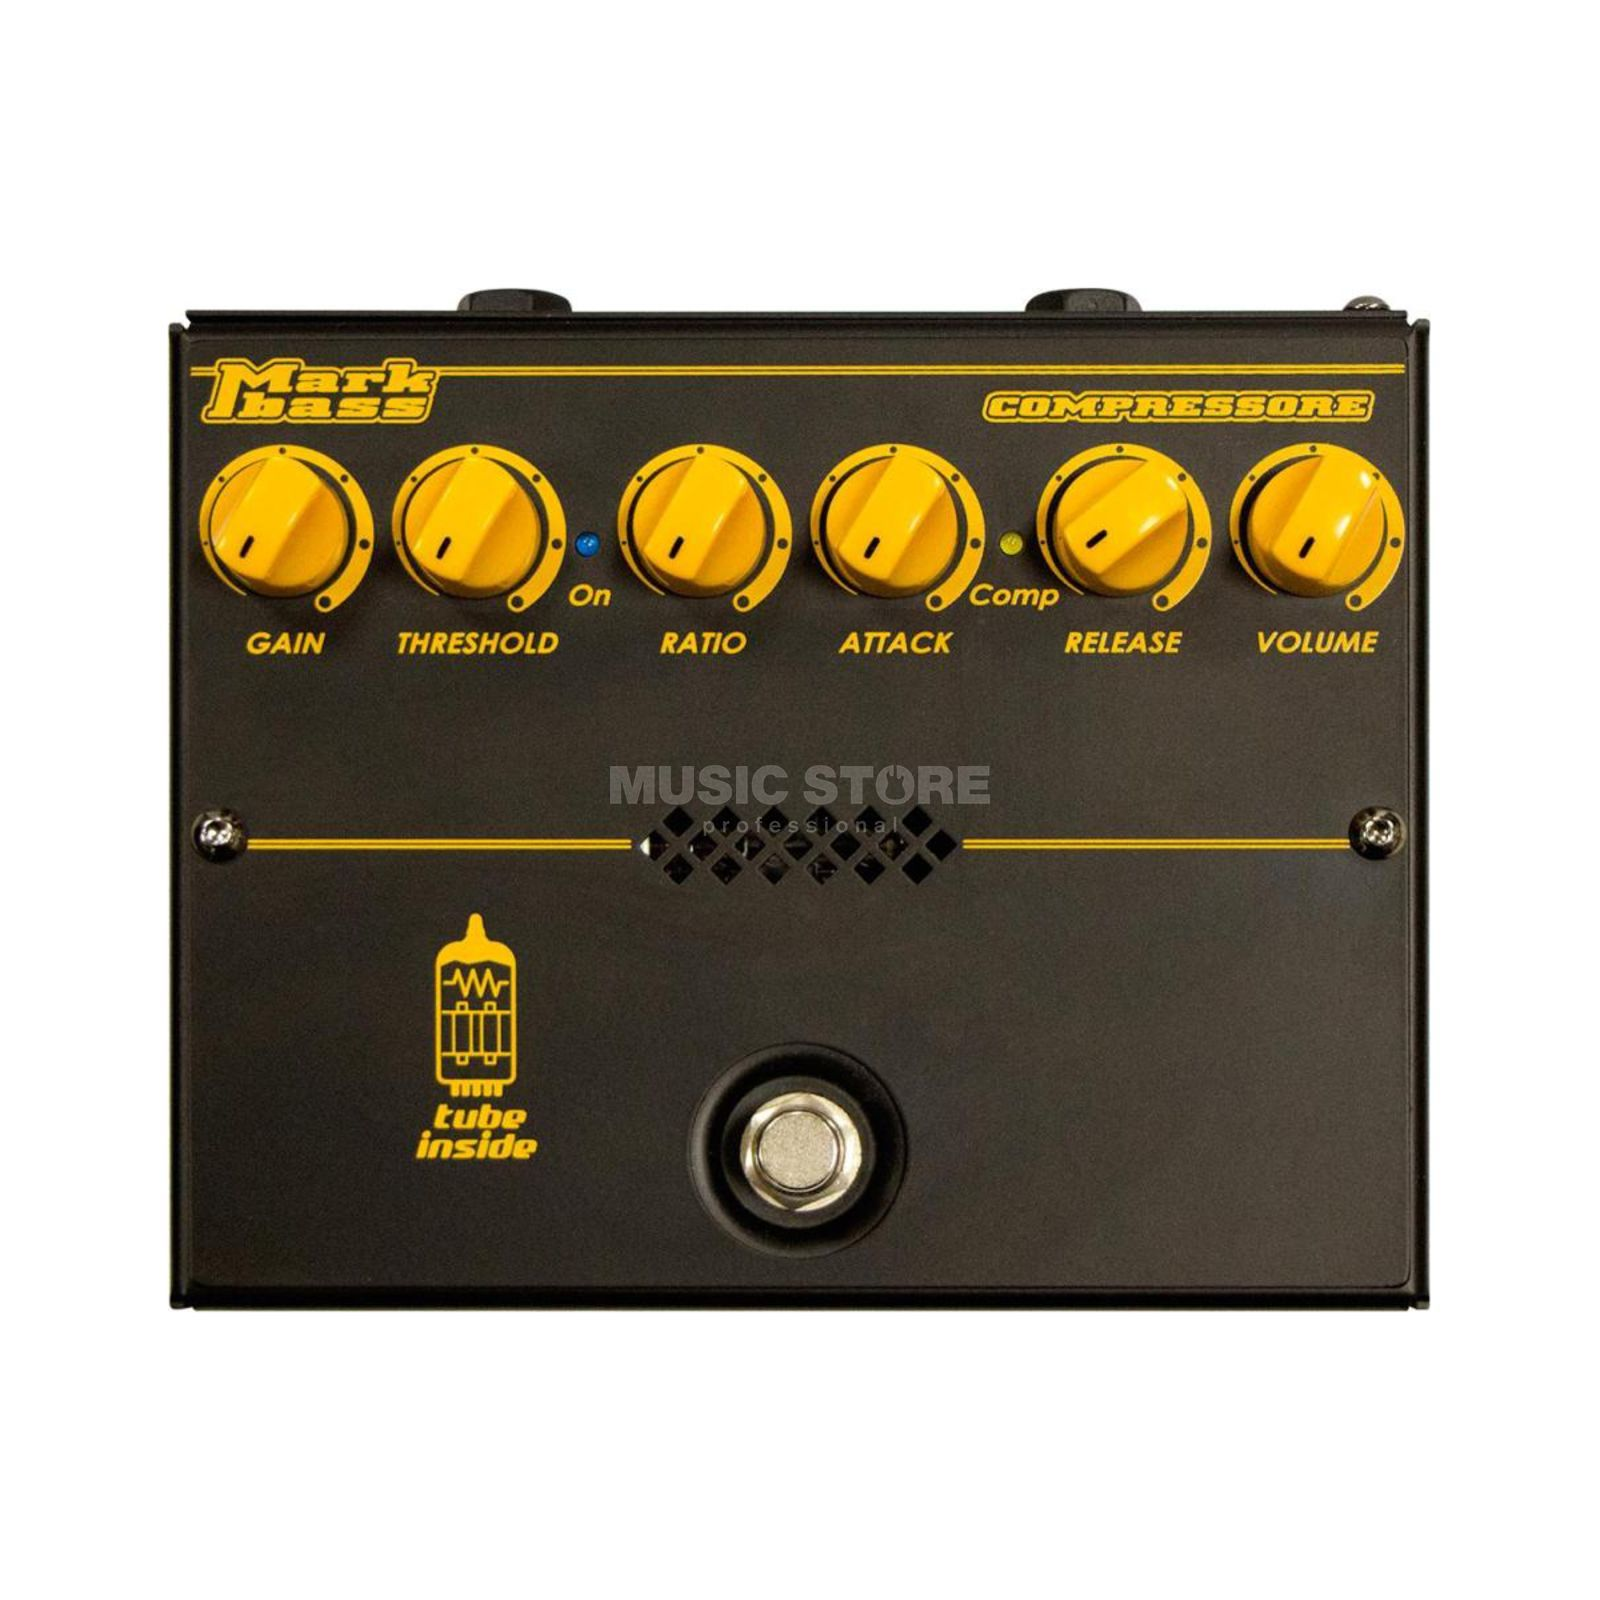 Markbass Compressore Pedal  Product Image